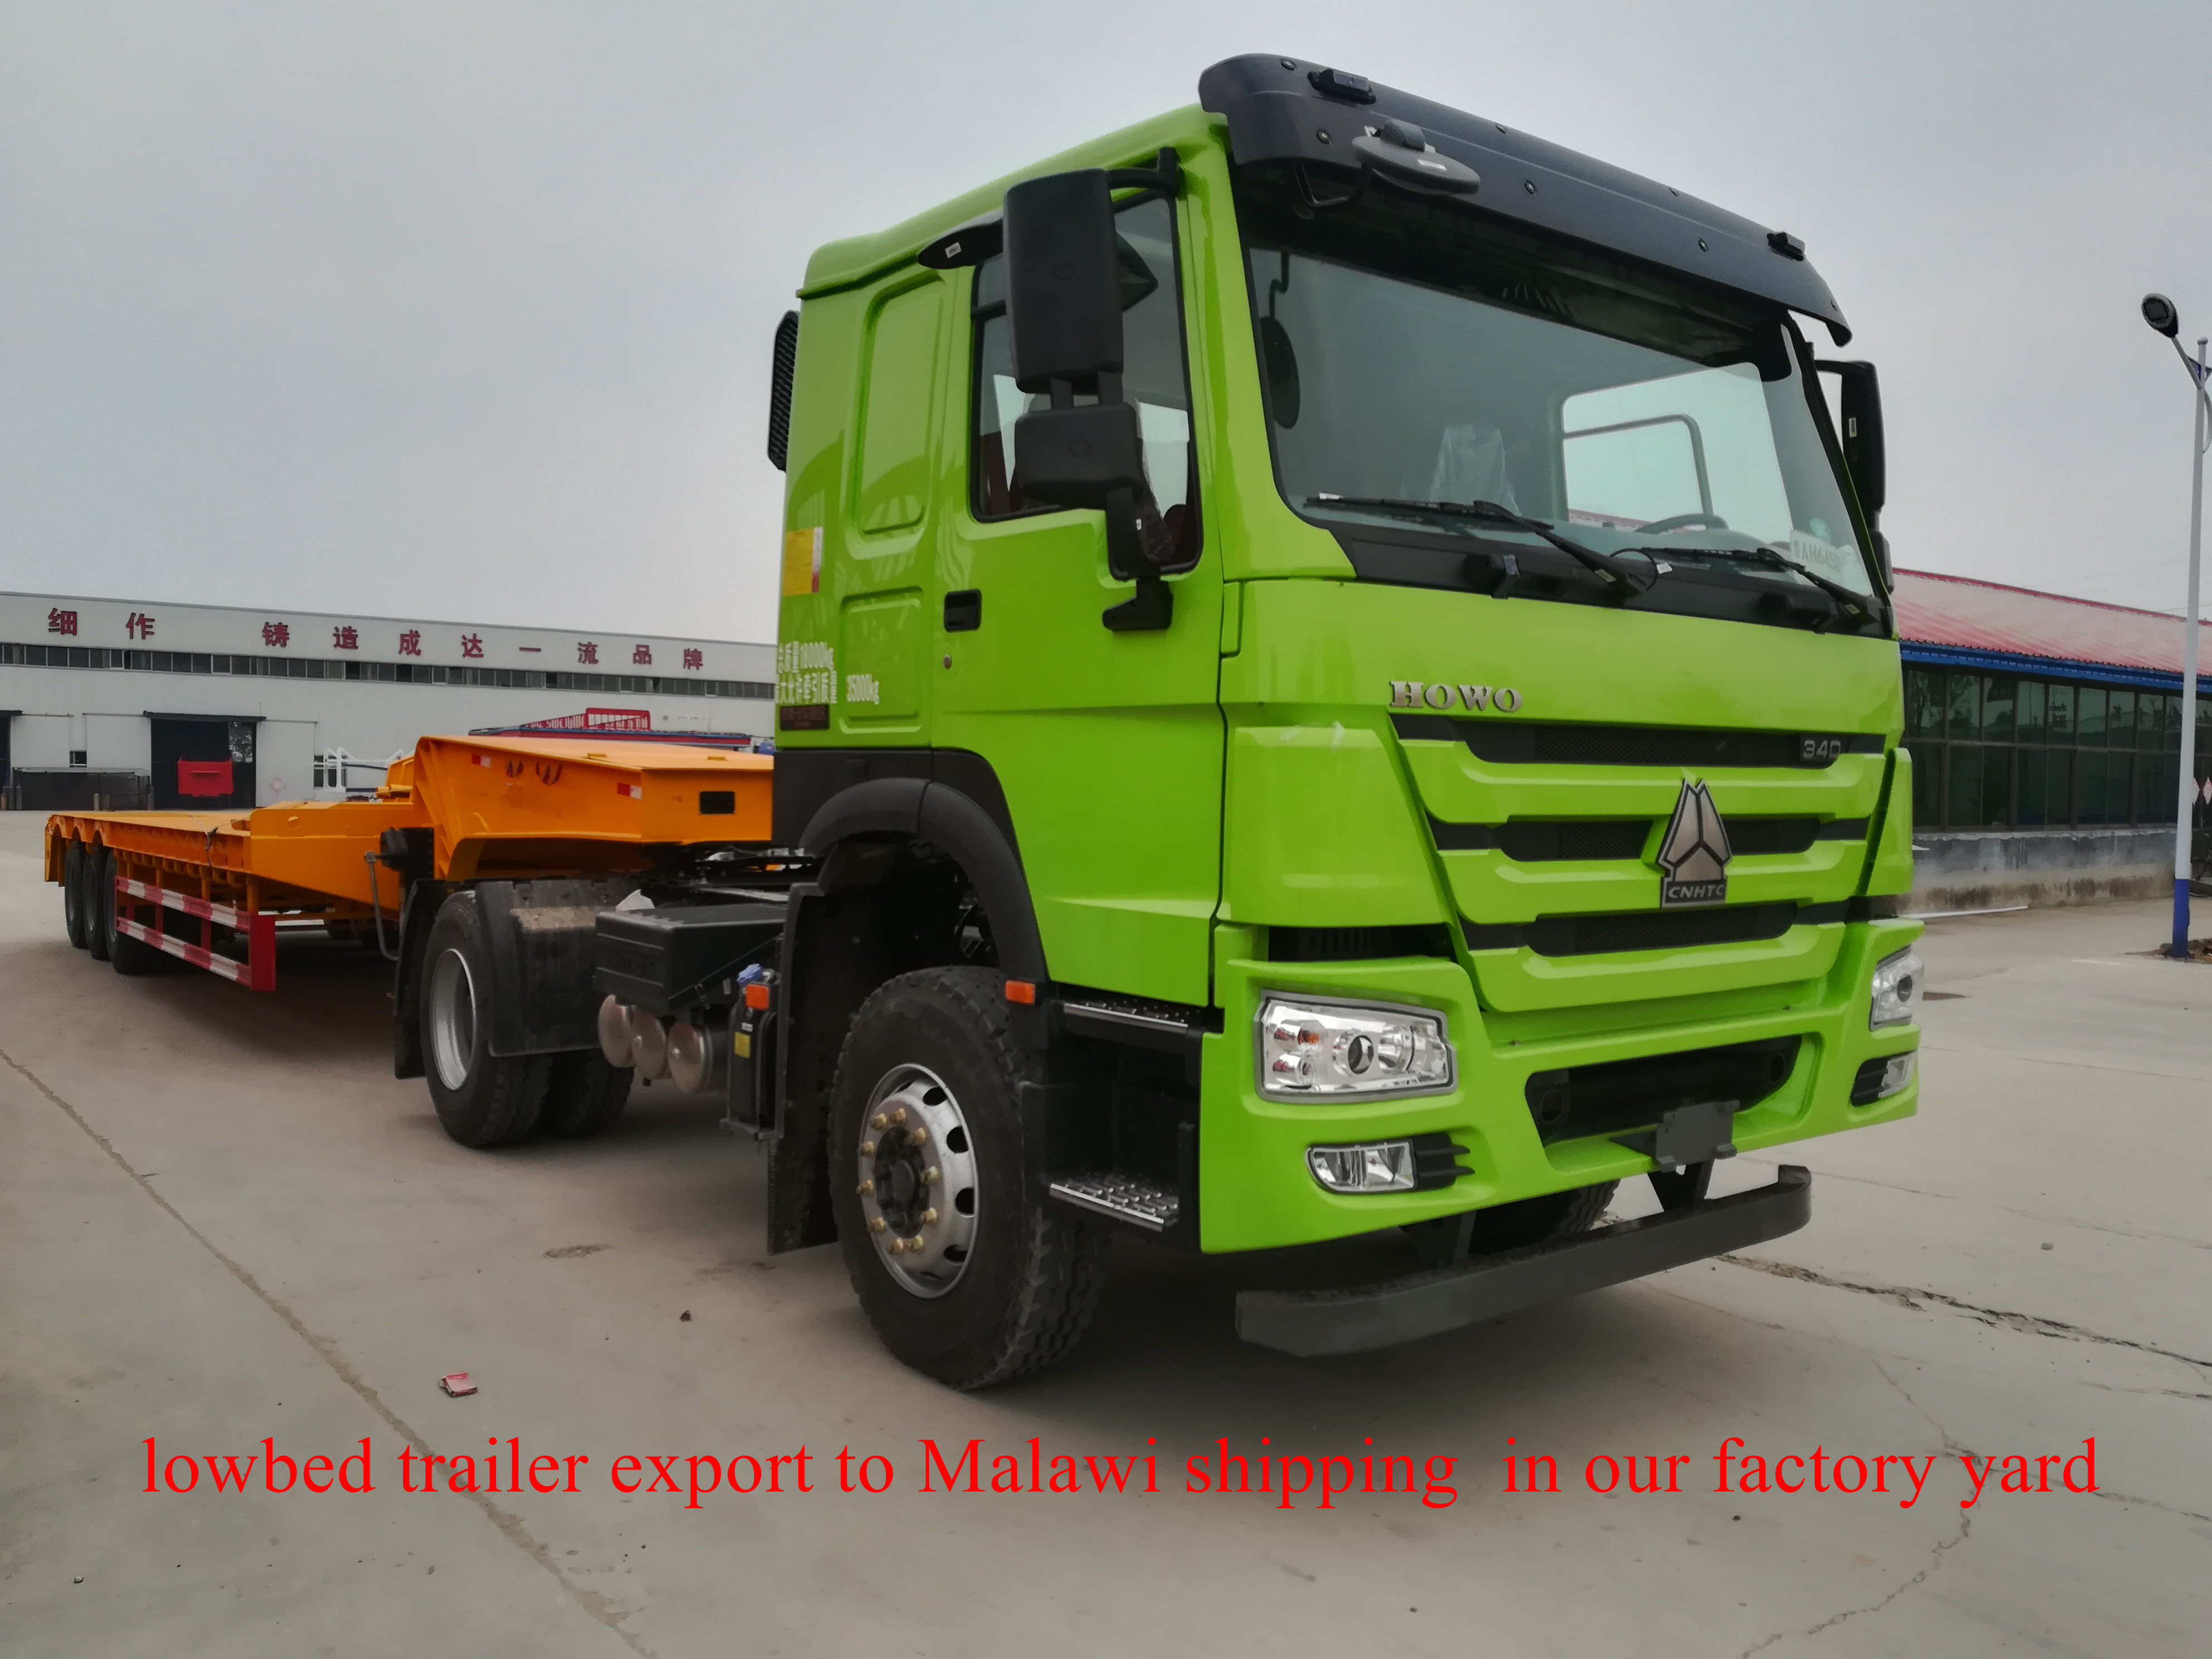 lowbed trailer export to Malawi shipping  in our factory yard on 04232018 (4)_副本.jpg